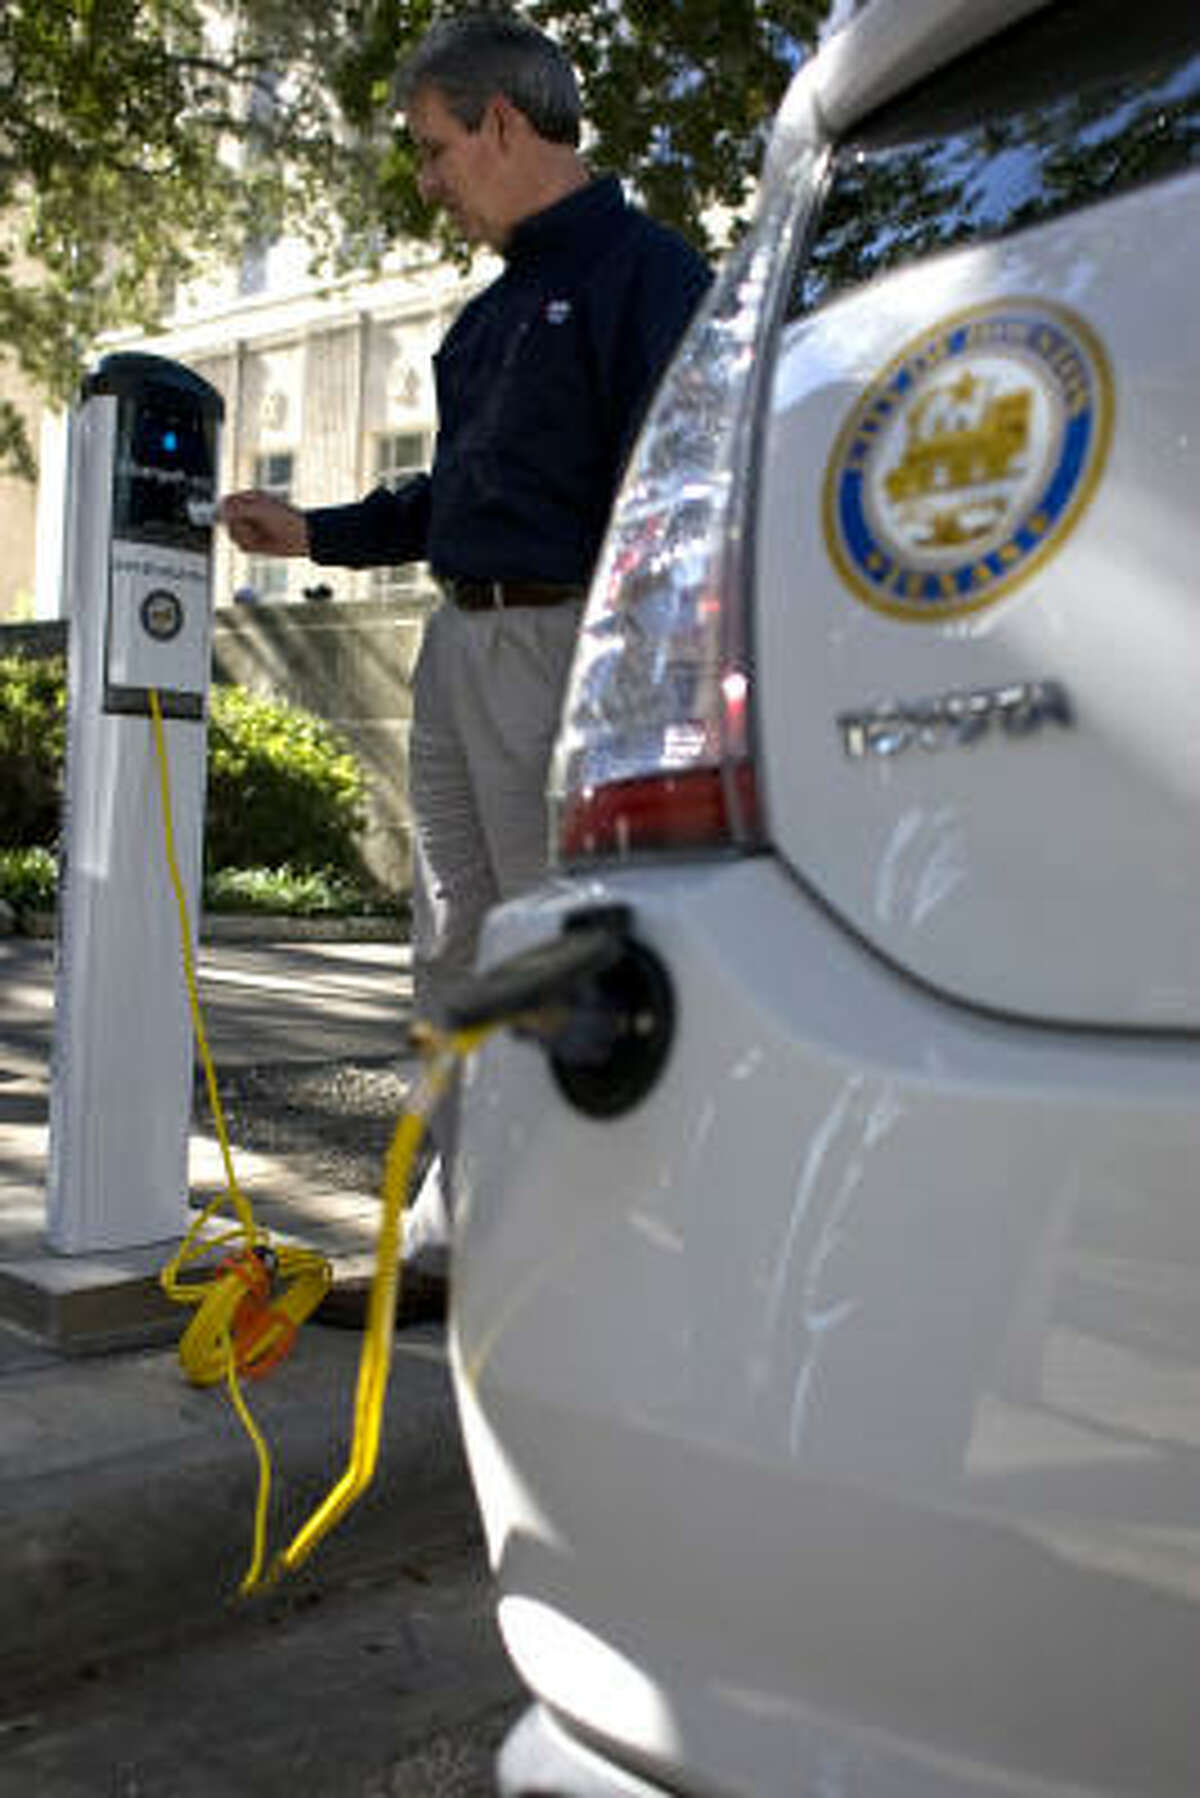 Mike McCabe, Reliant Energy technology manager, tries out the new vehicle charging station outside Houston's City Hall on Tuesday. With Reliant, the city is converting 10 of its hybrids into plug-in vehicles.